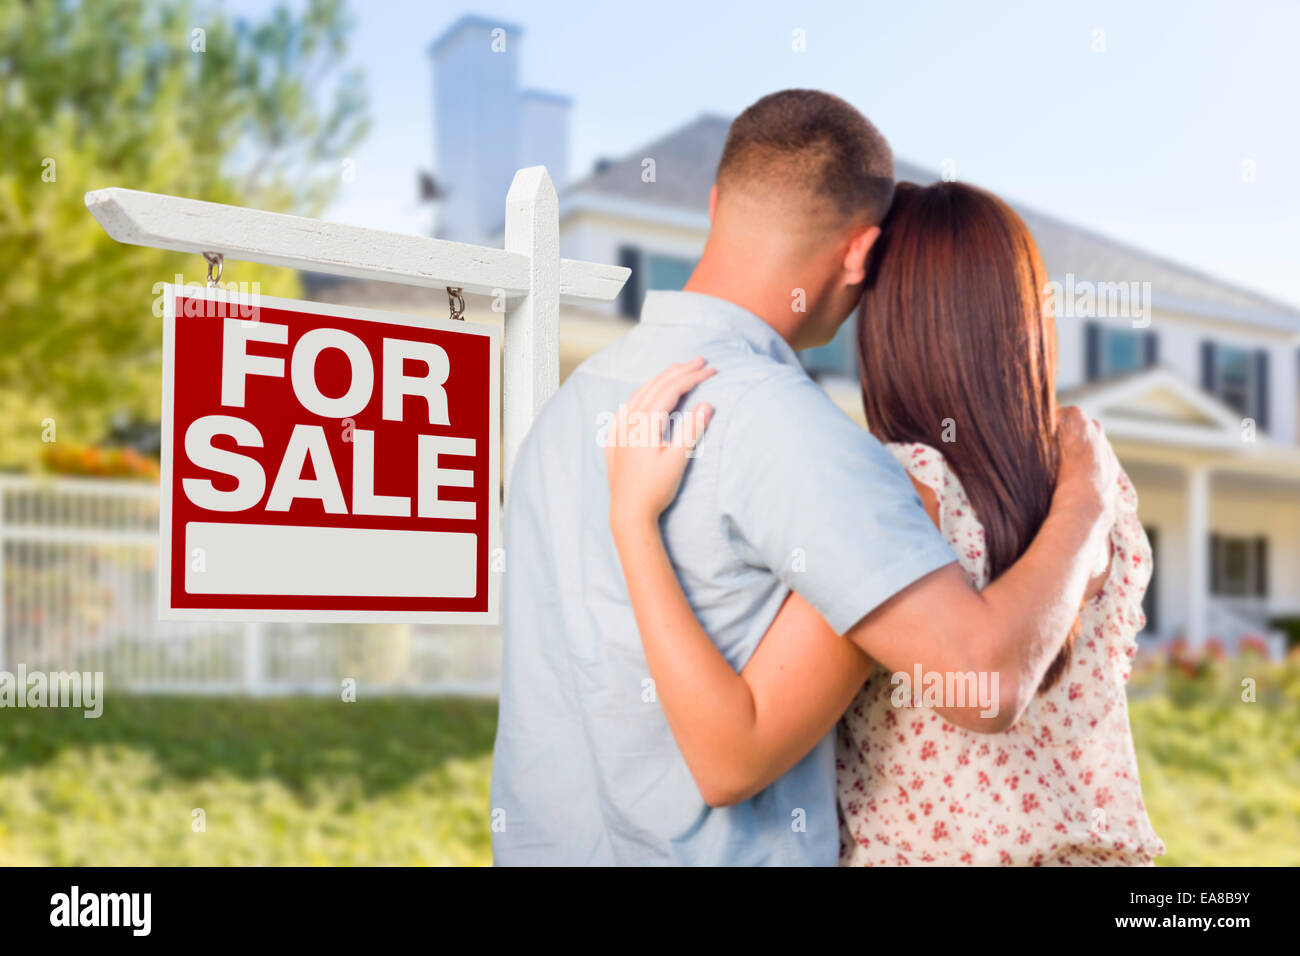 For Sale Real Estate Sign and Affectionate Military Couple Looking at Nice New House. - Stock Image